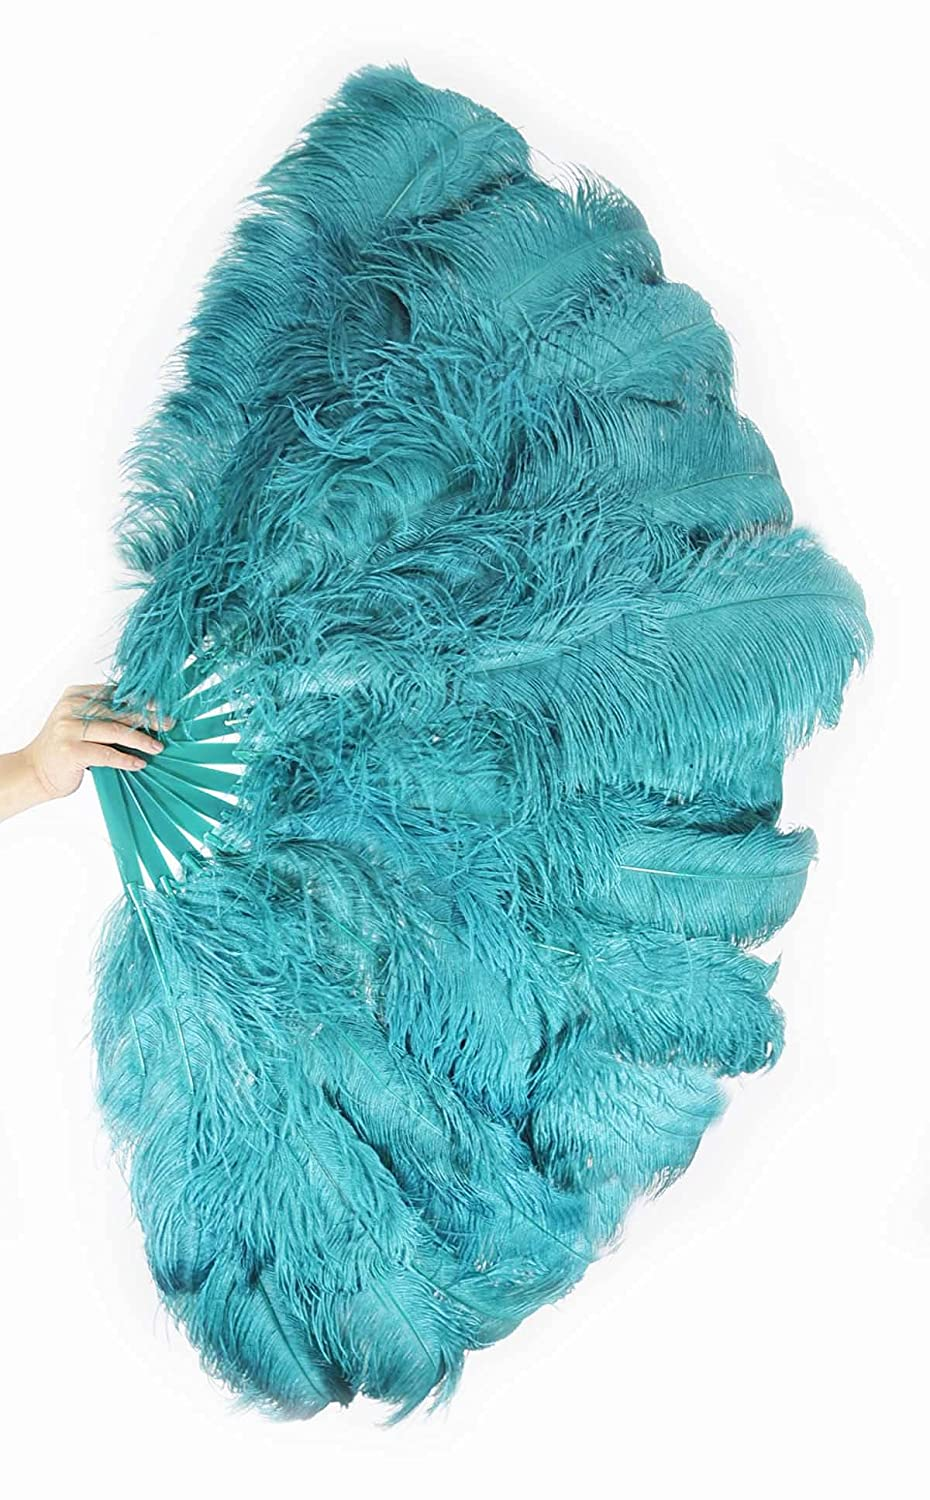 Teal 3 Layers Max 57% OFF Ostrich Feather Fan New item 65